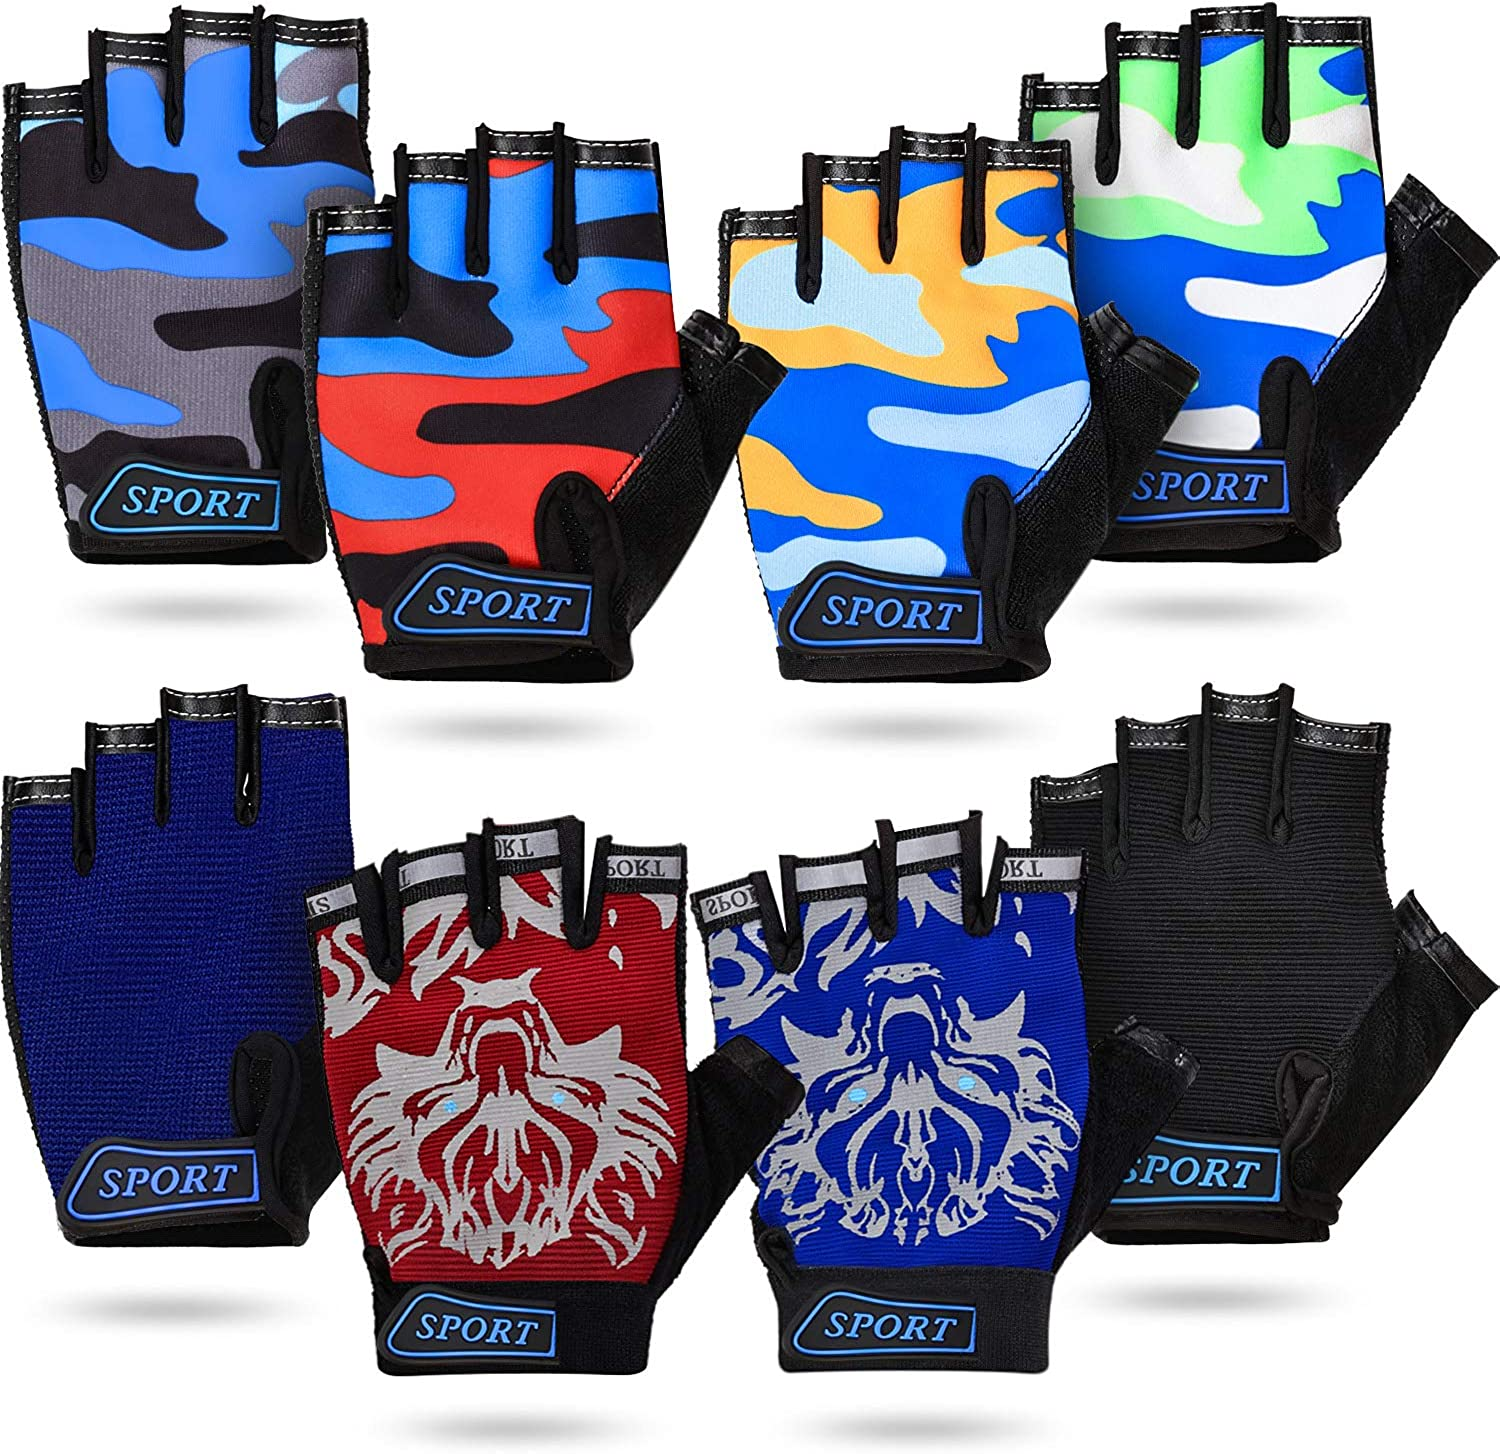 8 Pairs Kids Half Finger Gloves Fingerless Bicycle Gloves Breathable Kids Short Finger Gloves Non-Slip Outdoor Sports Gloves for Children Cycling Climbing Riding, 8 Colors